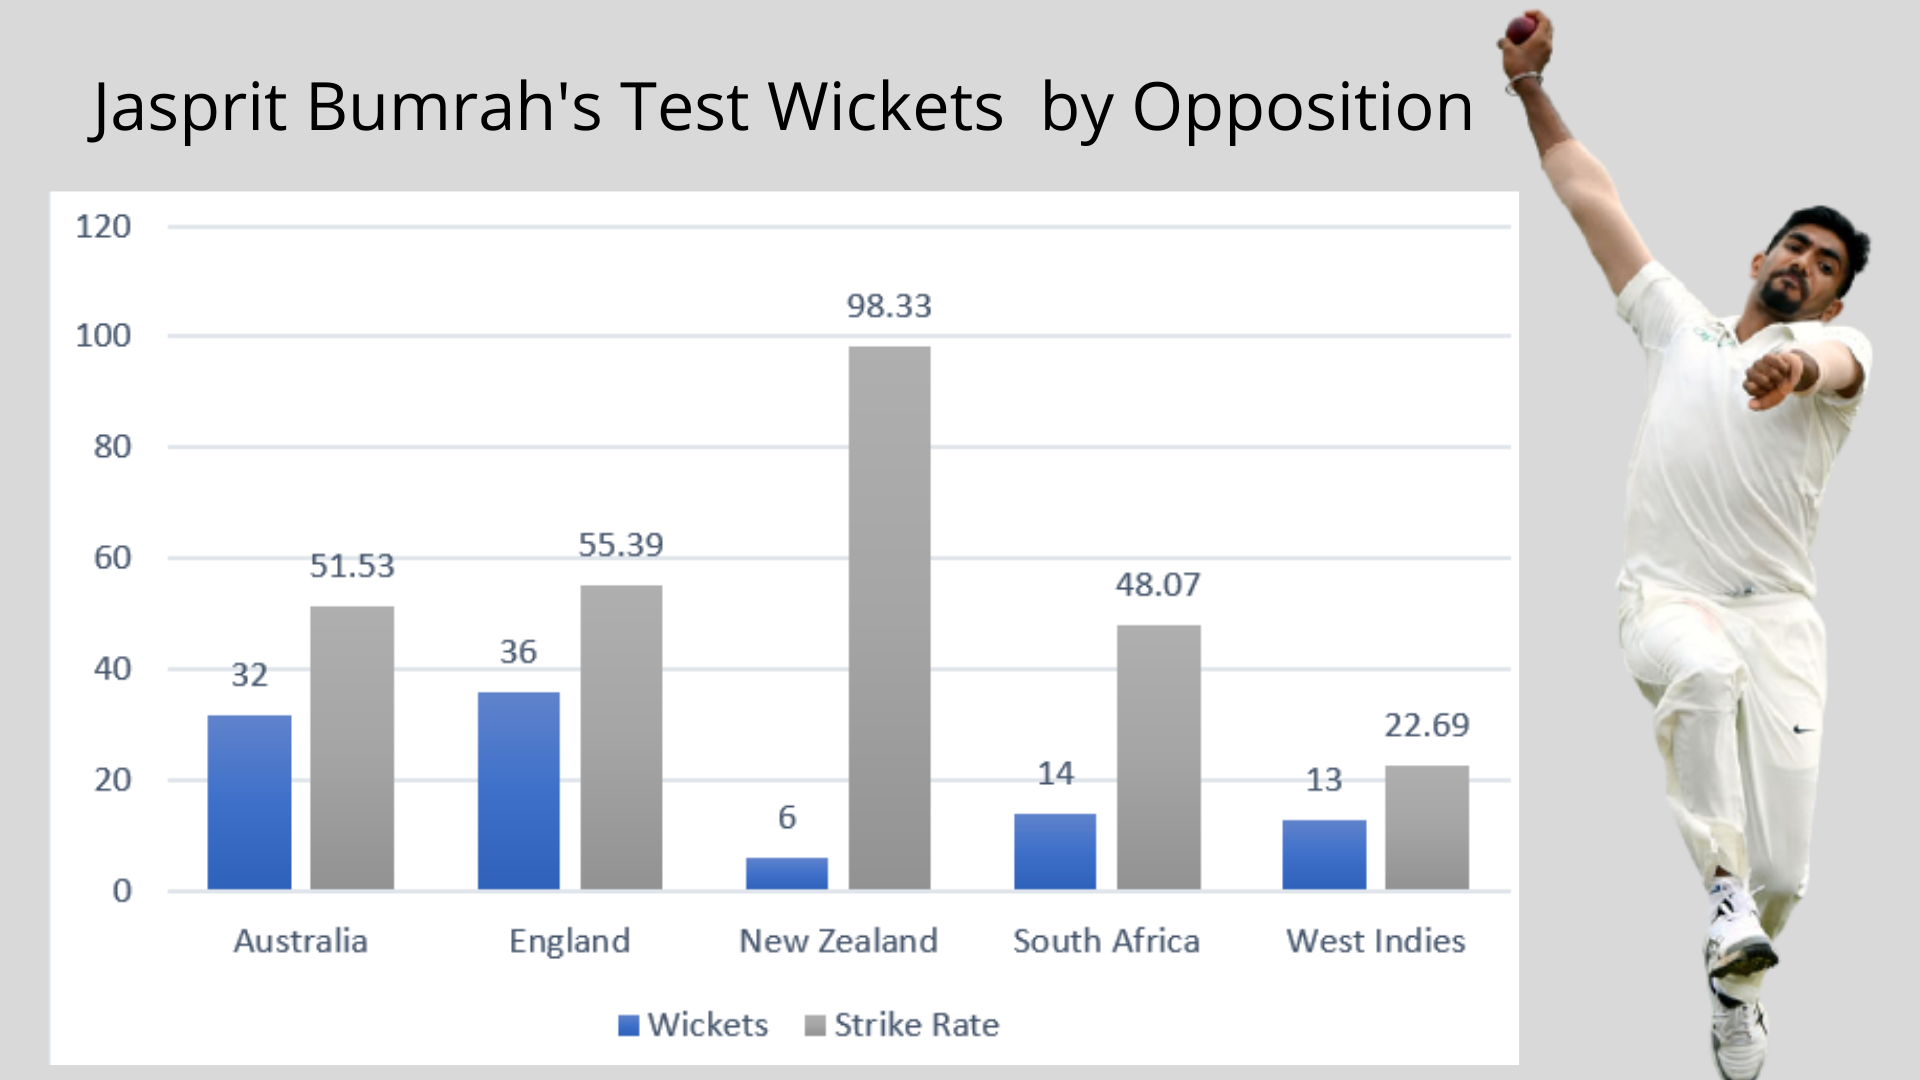 Jasprit Bumrah's Test Wickets by Opposition cricket analysis stats